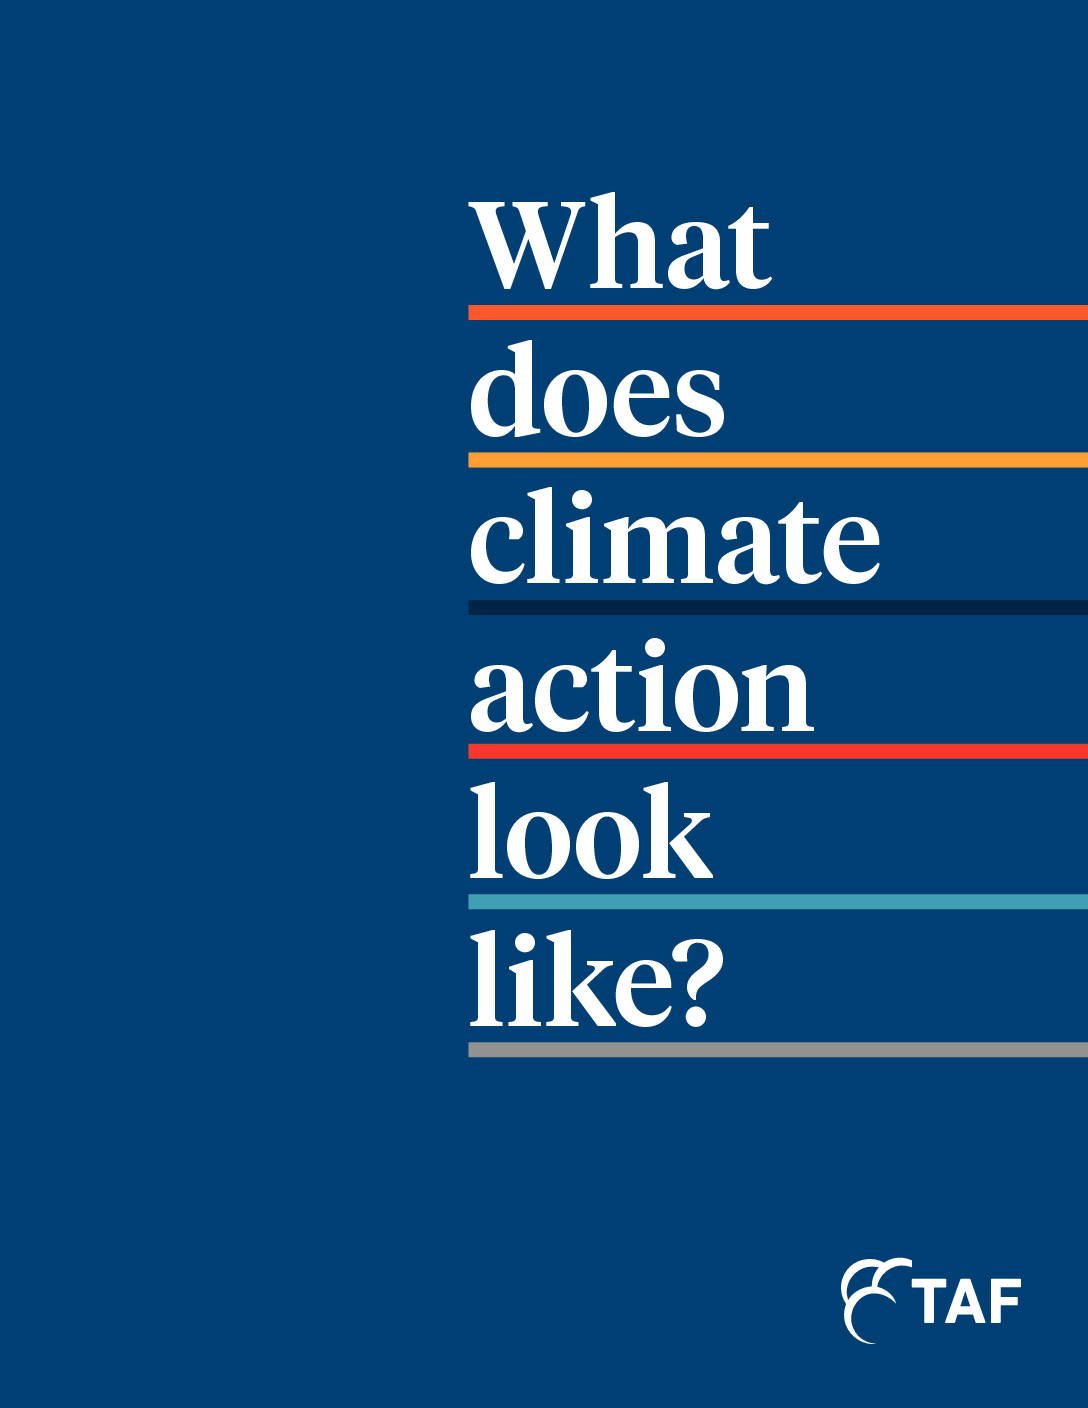 CLimate Action document thumbnails